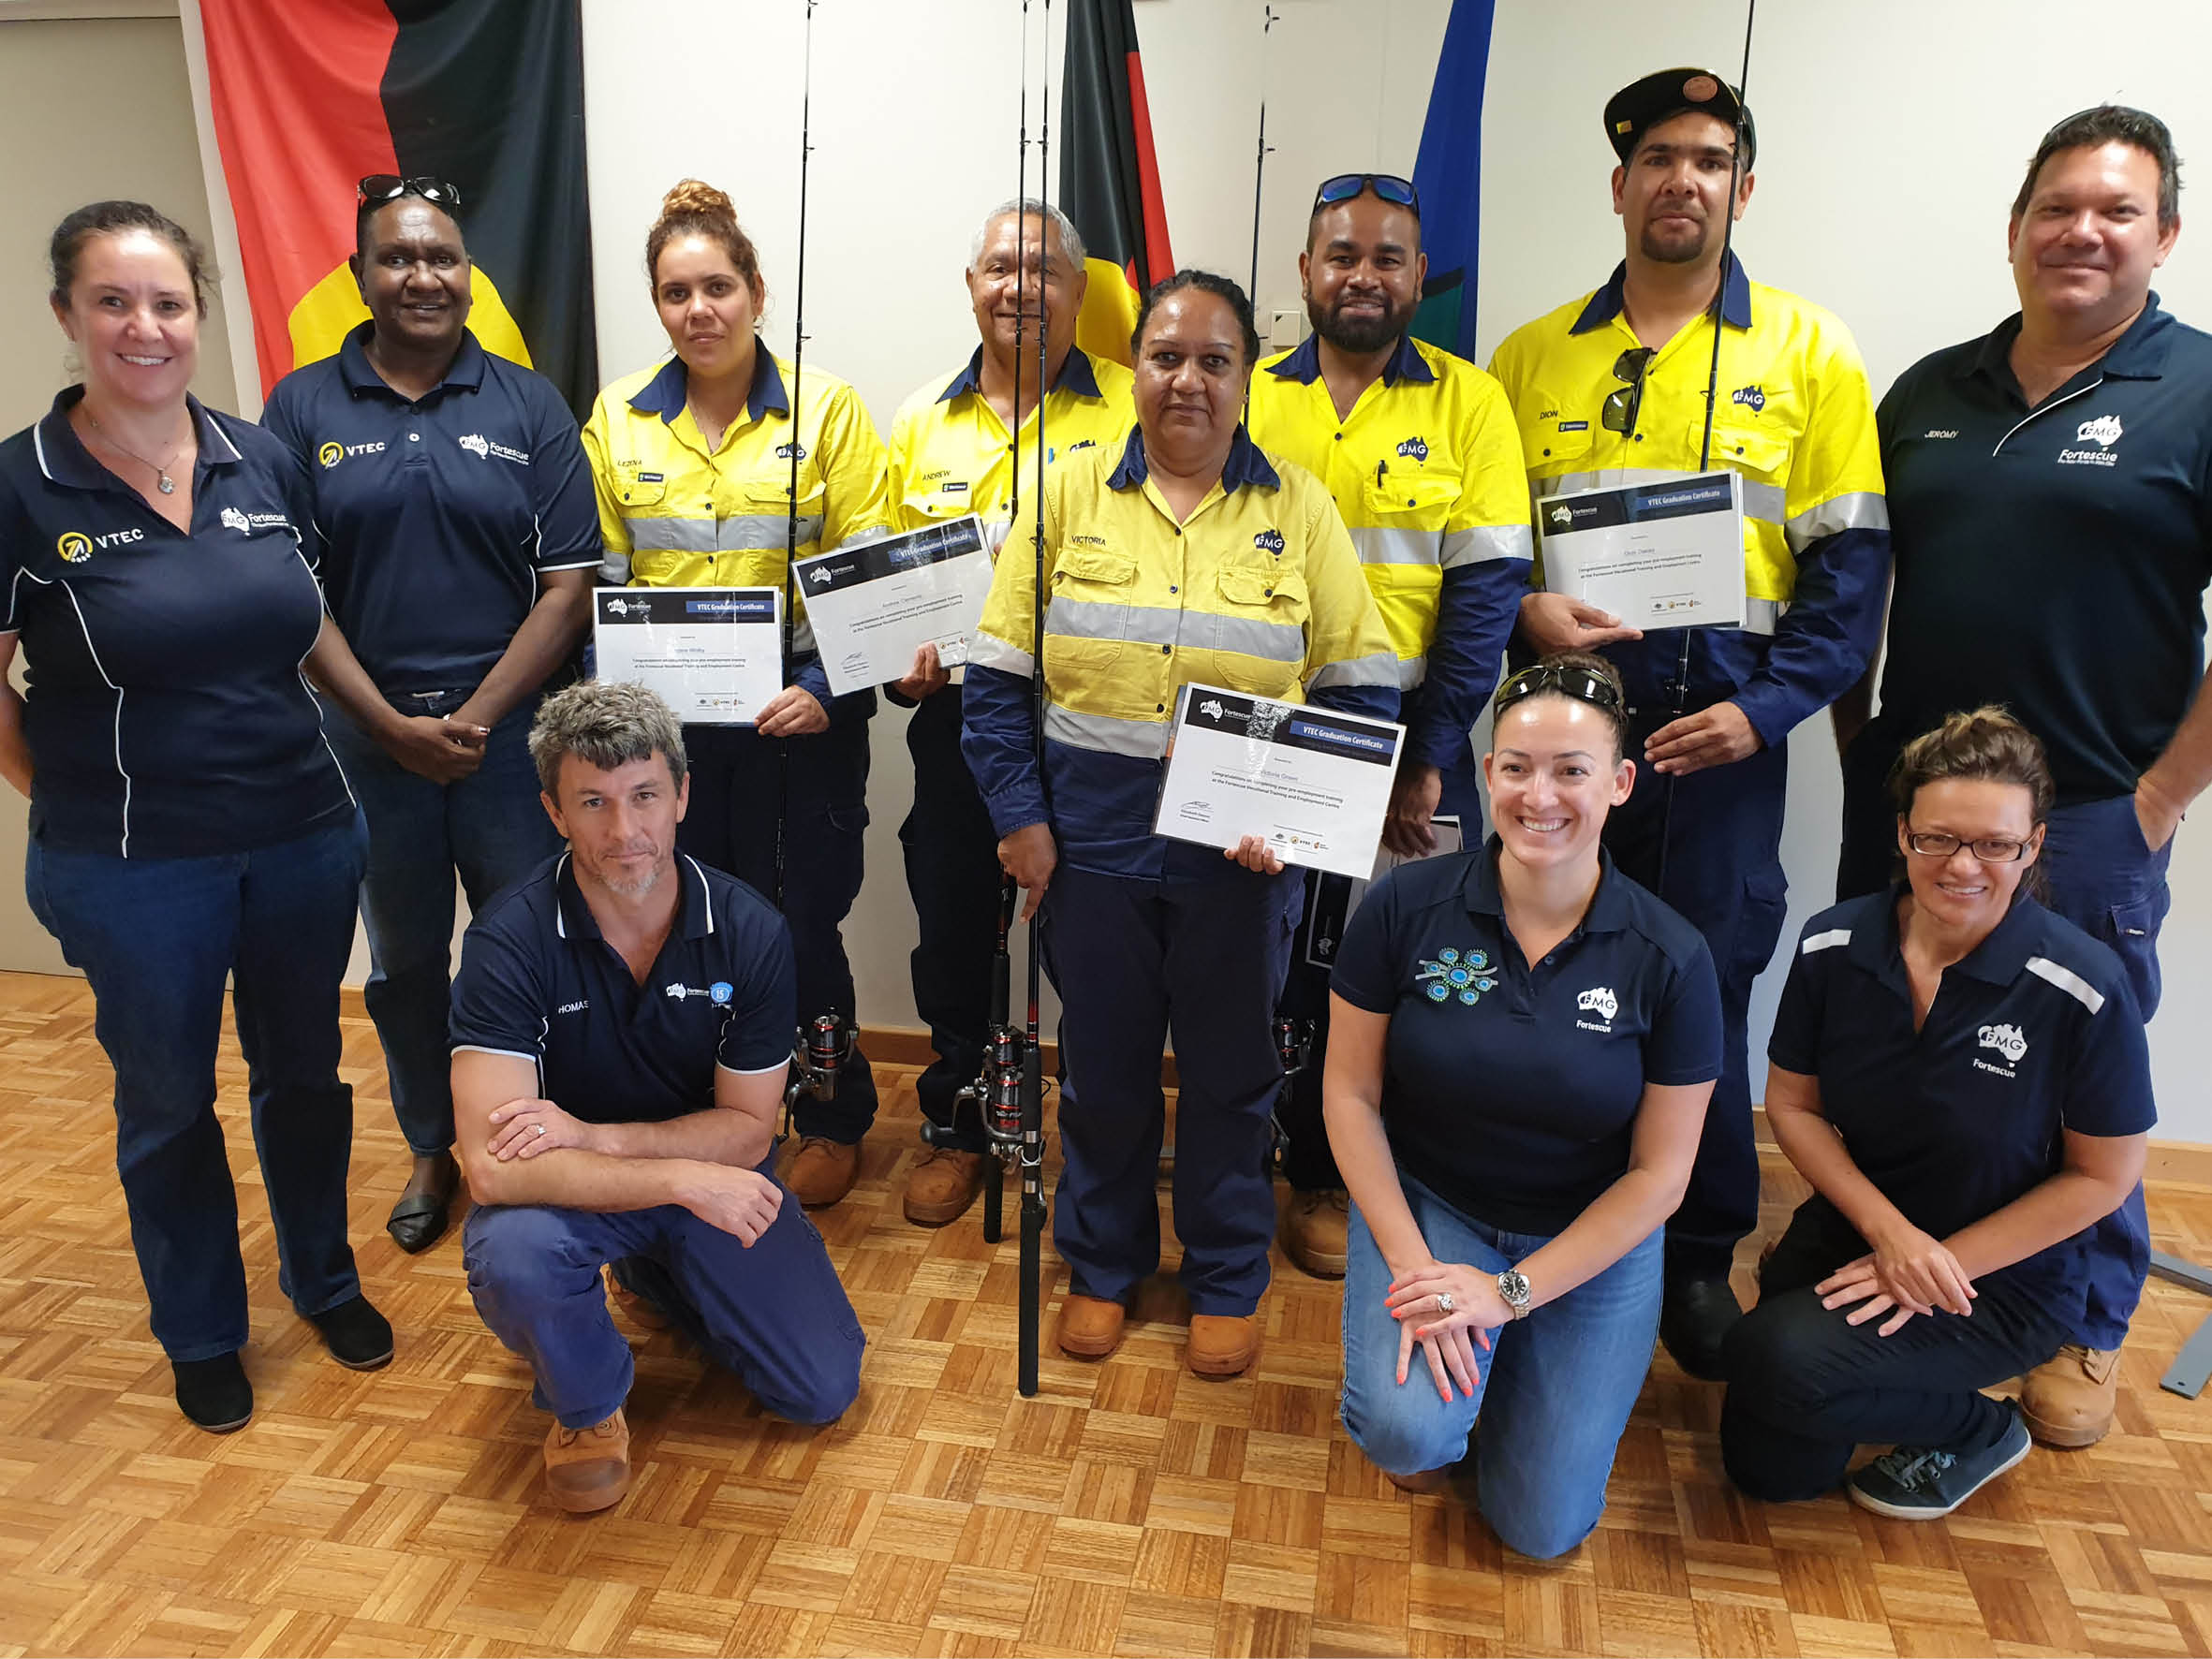 190411 Fortescue's VTEC provides career progression opportunities (Story)